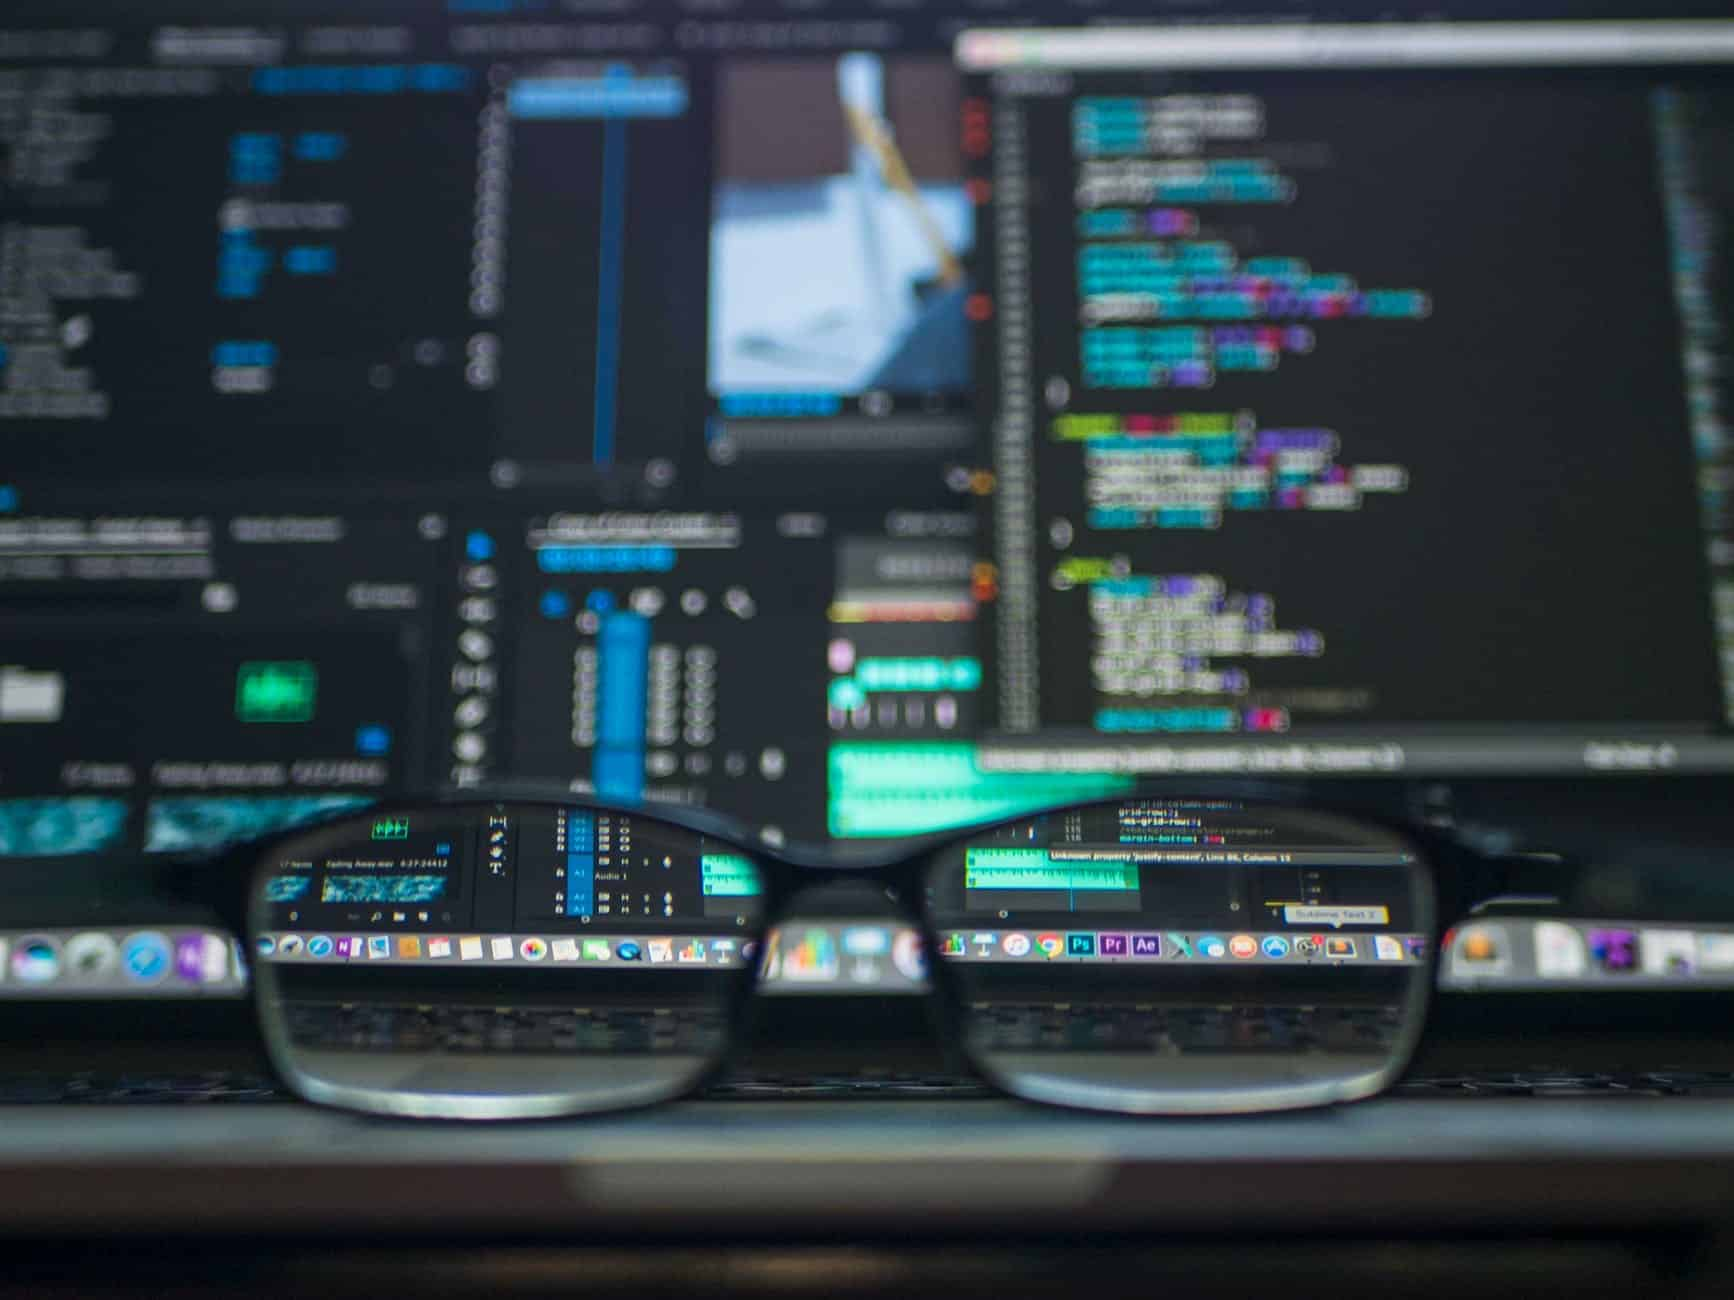 Glasses in front of a computer monitor